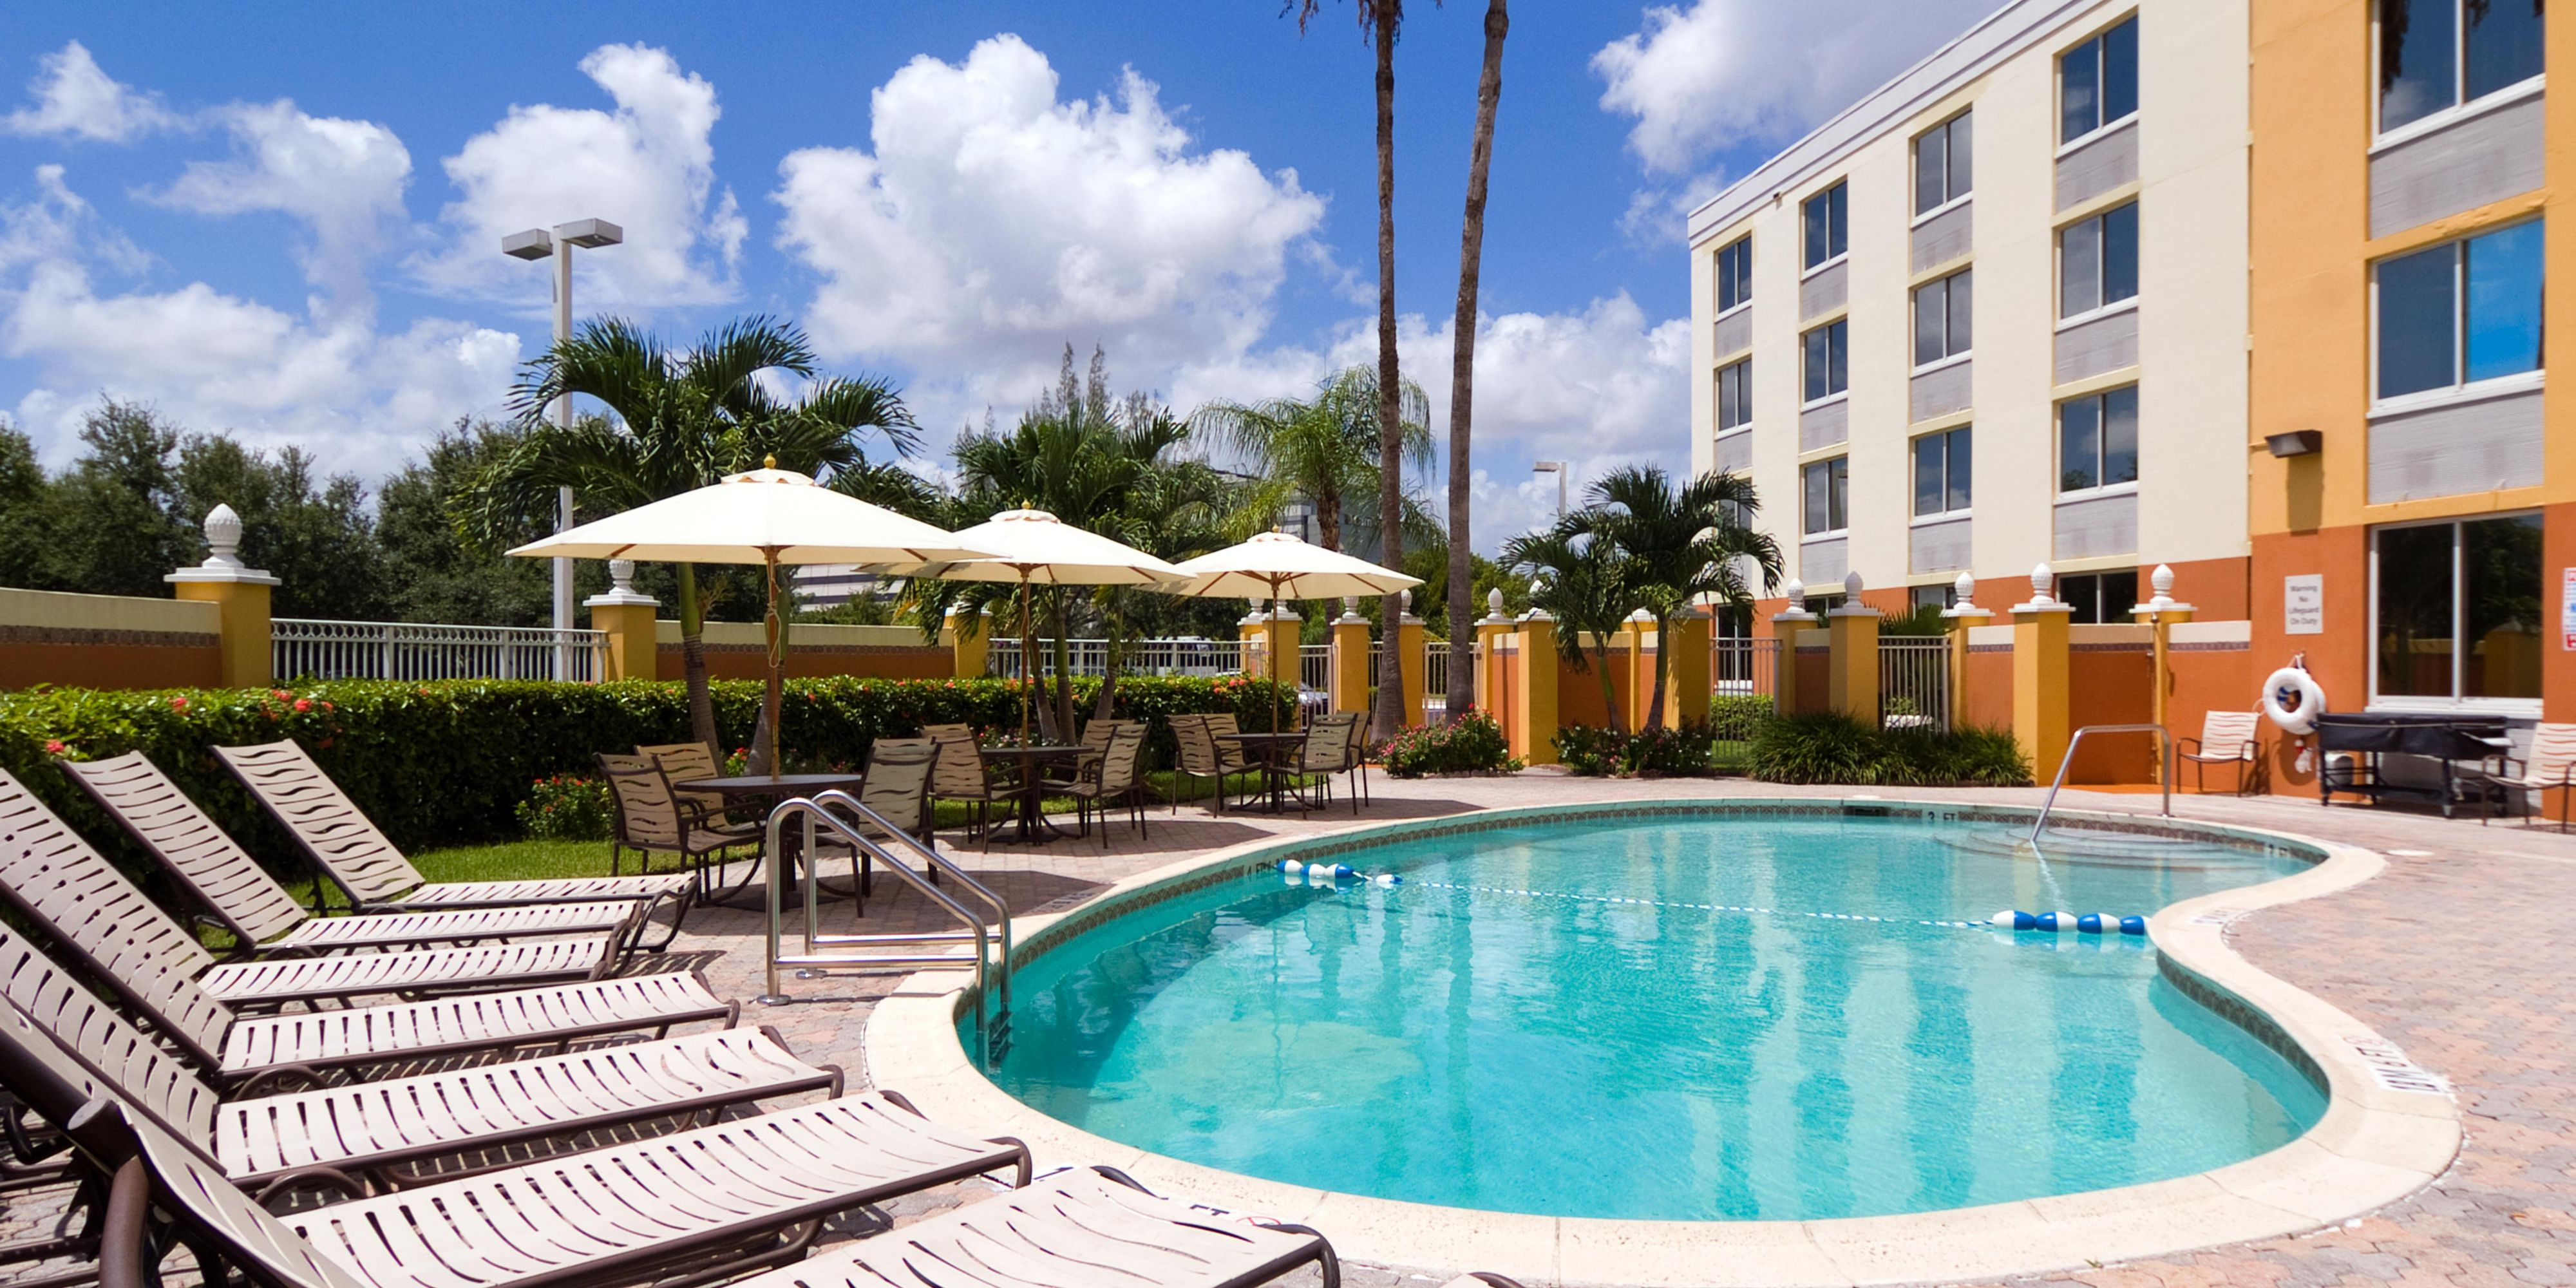 Holiday Inn Express Miami 2531942369 2x1